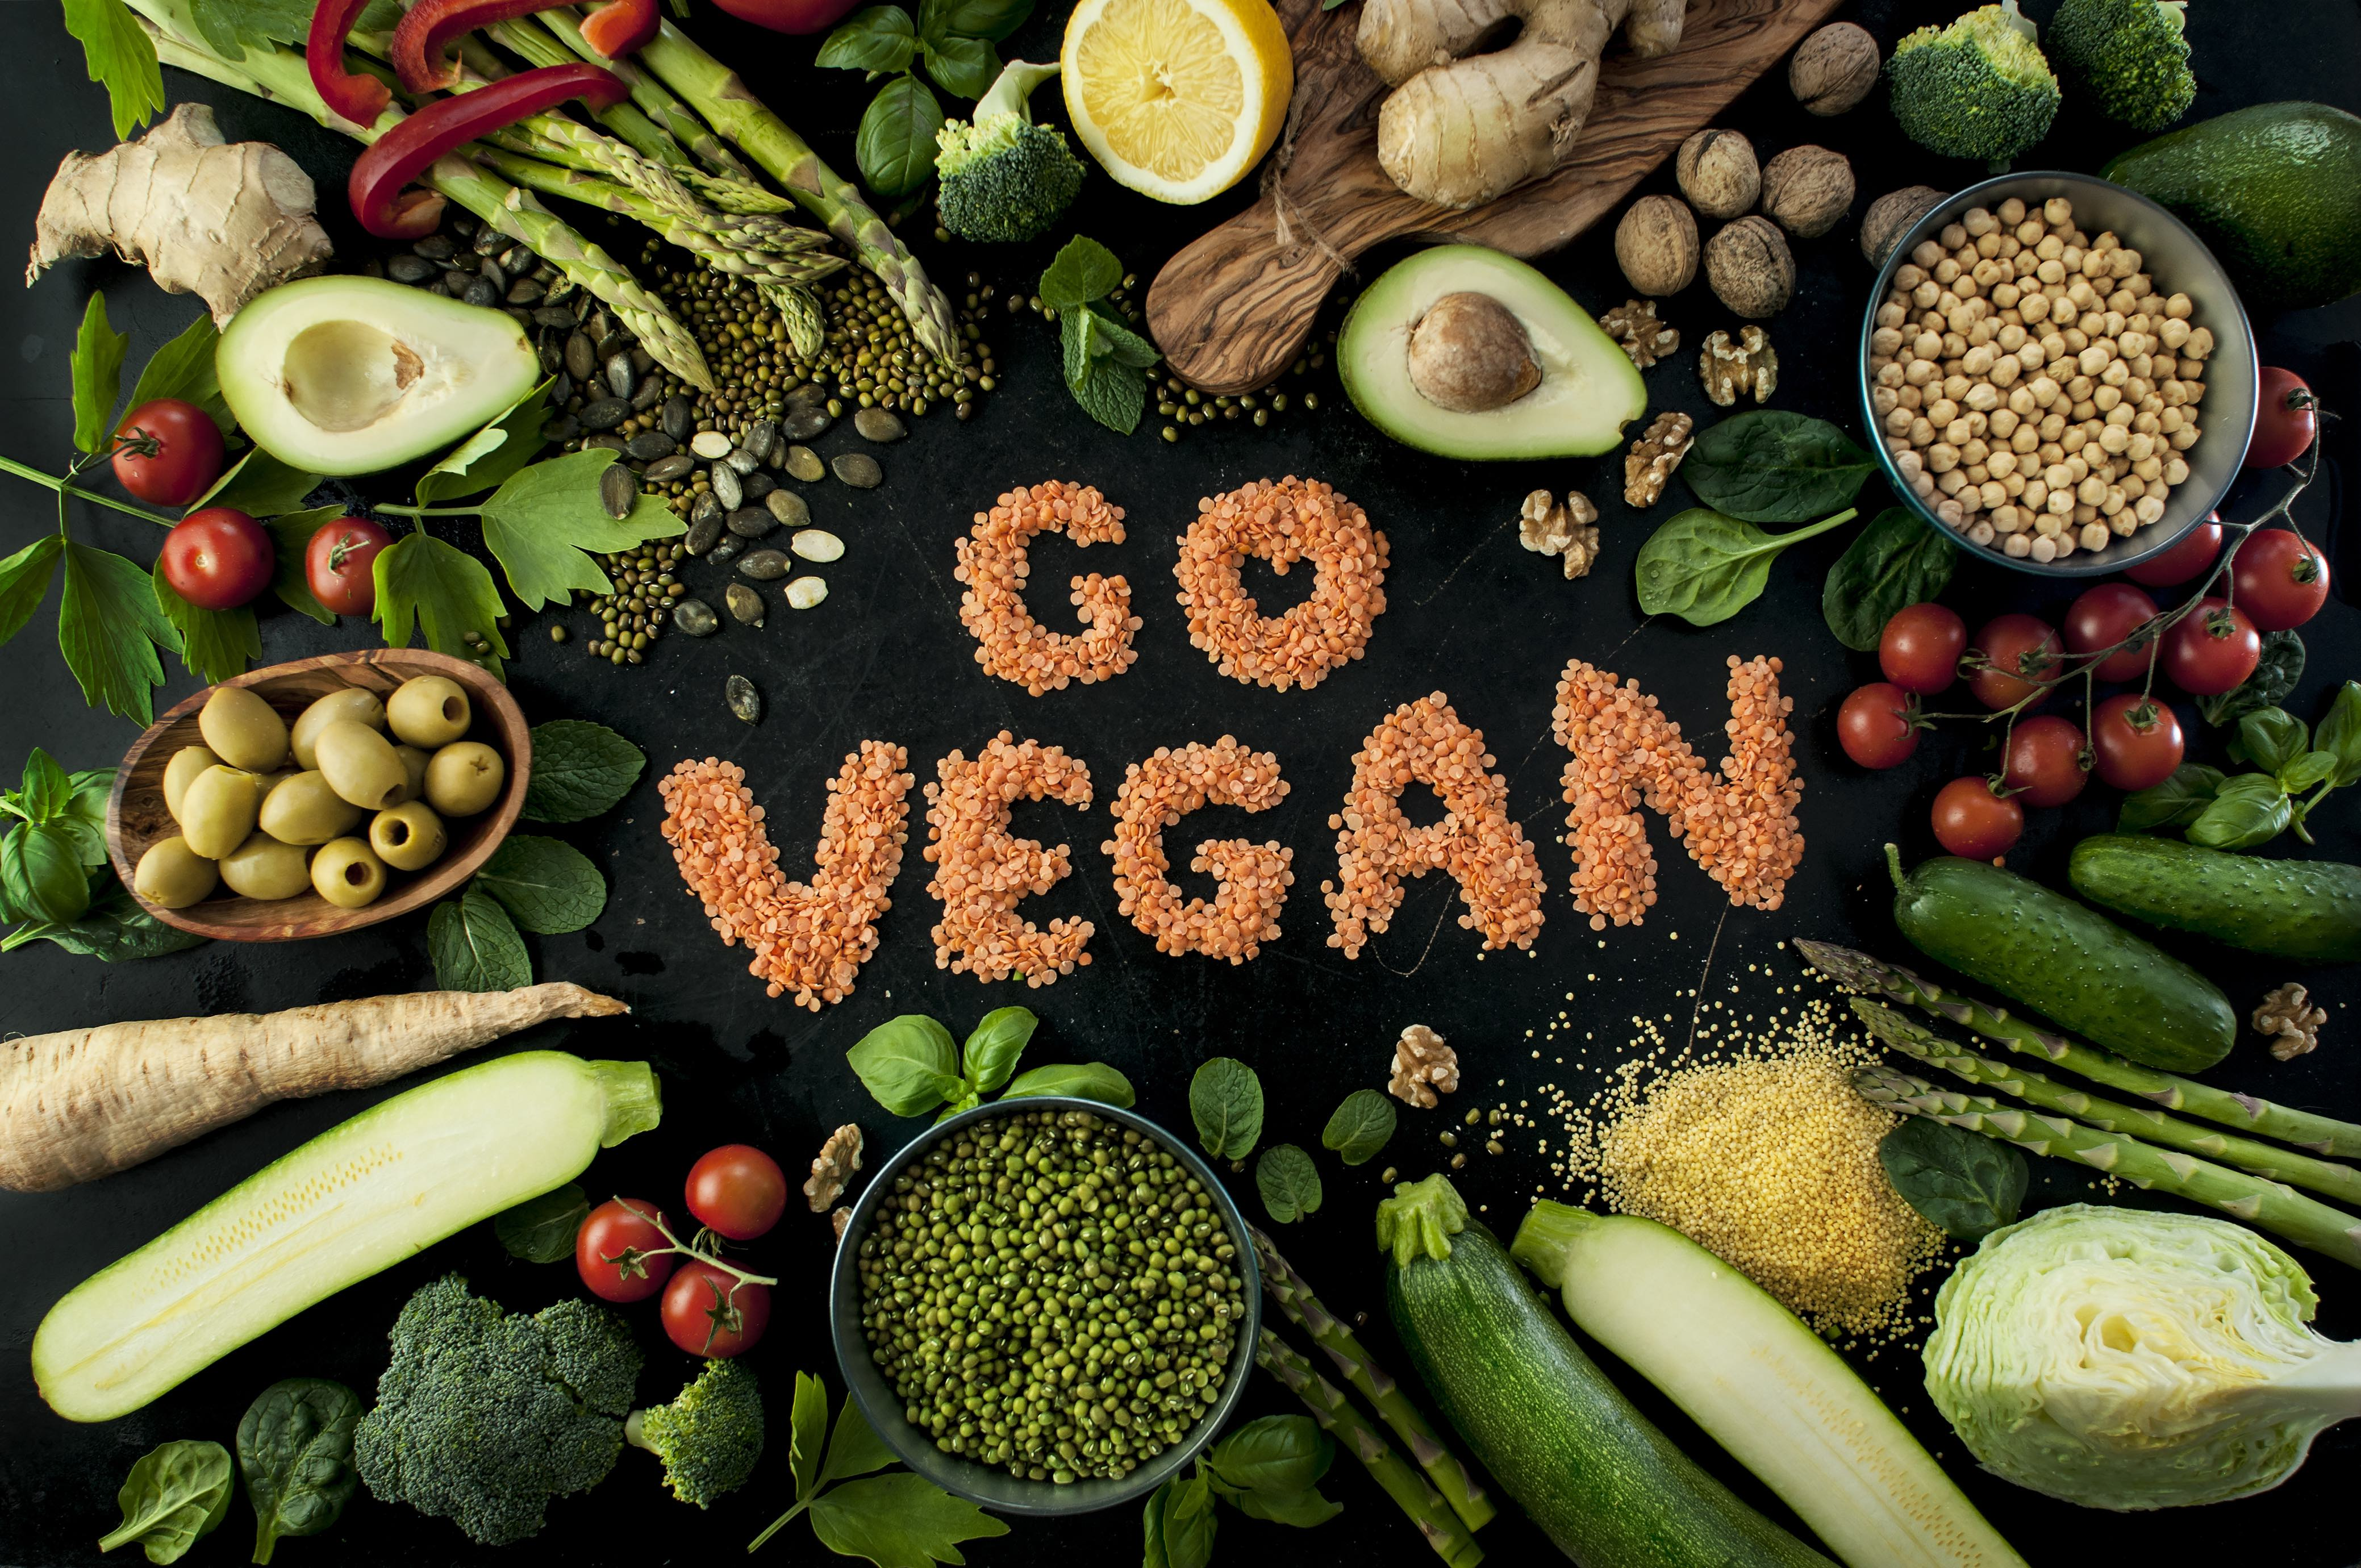 Going Vegan - What You Should Know